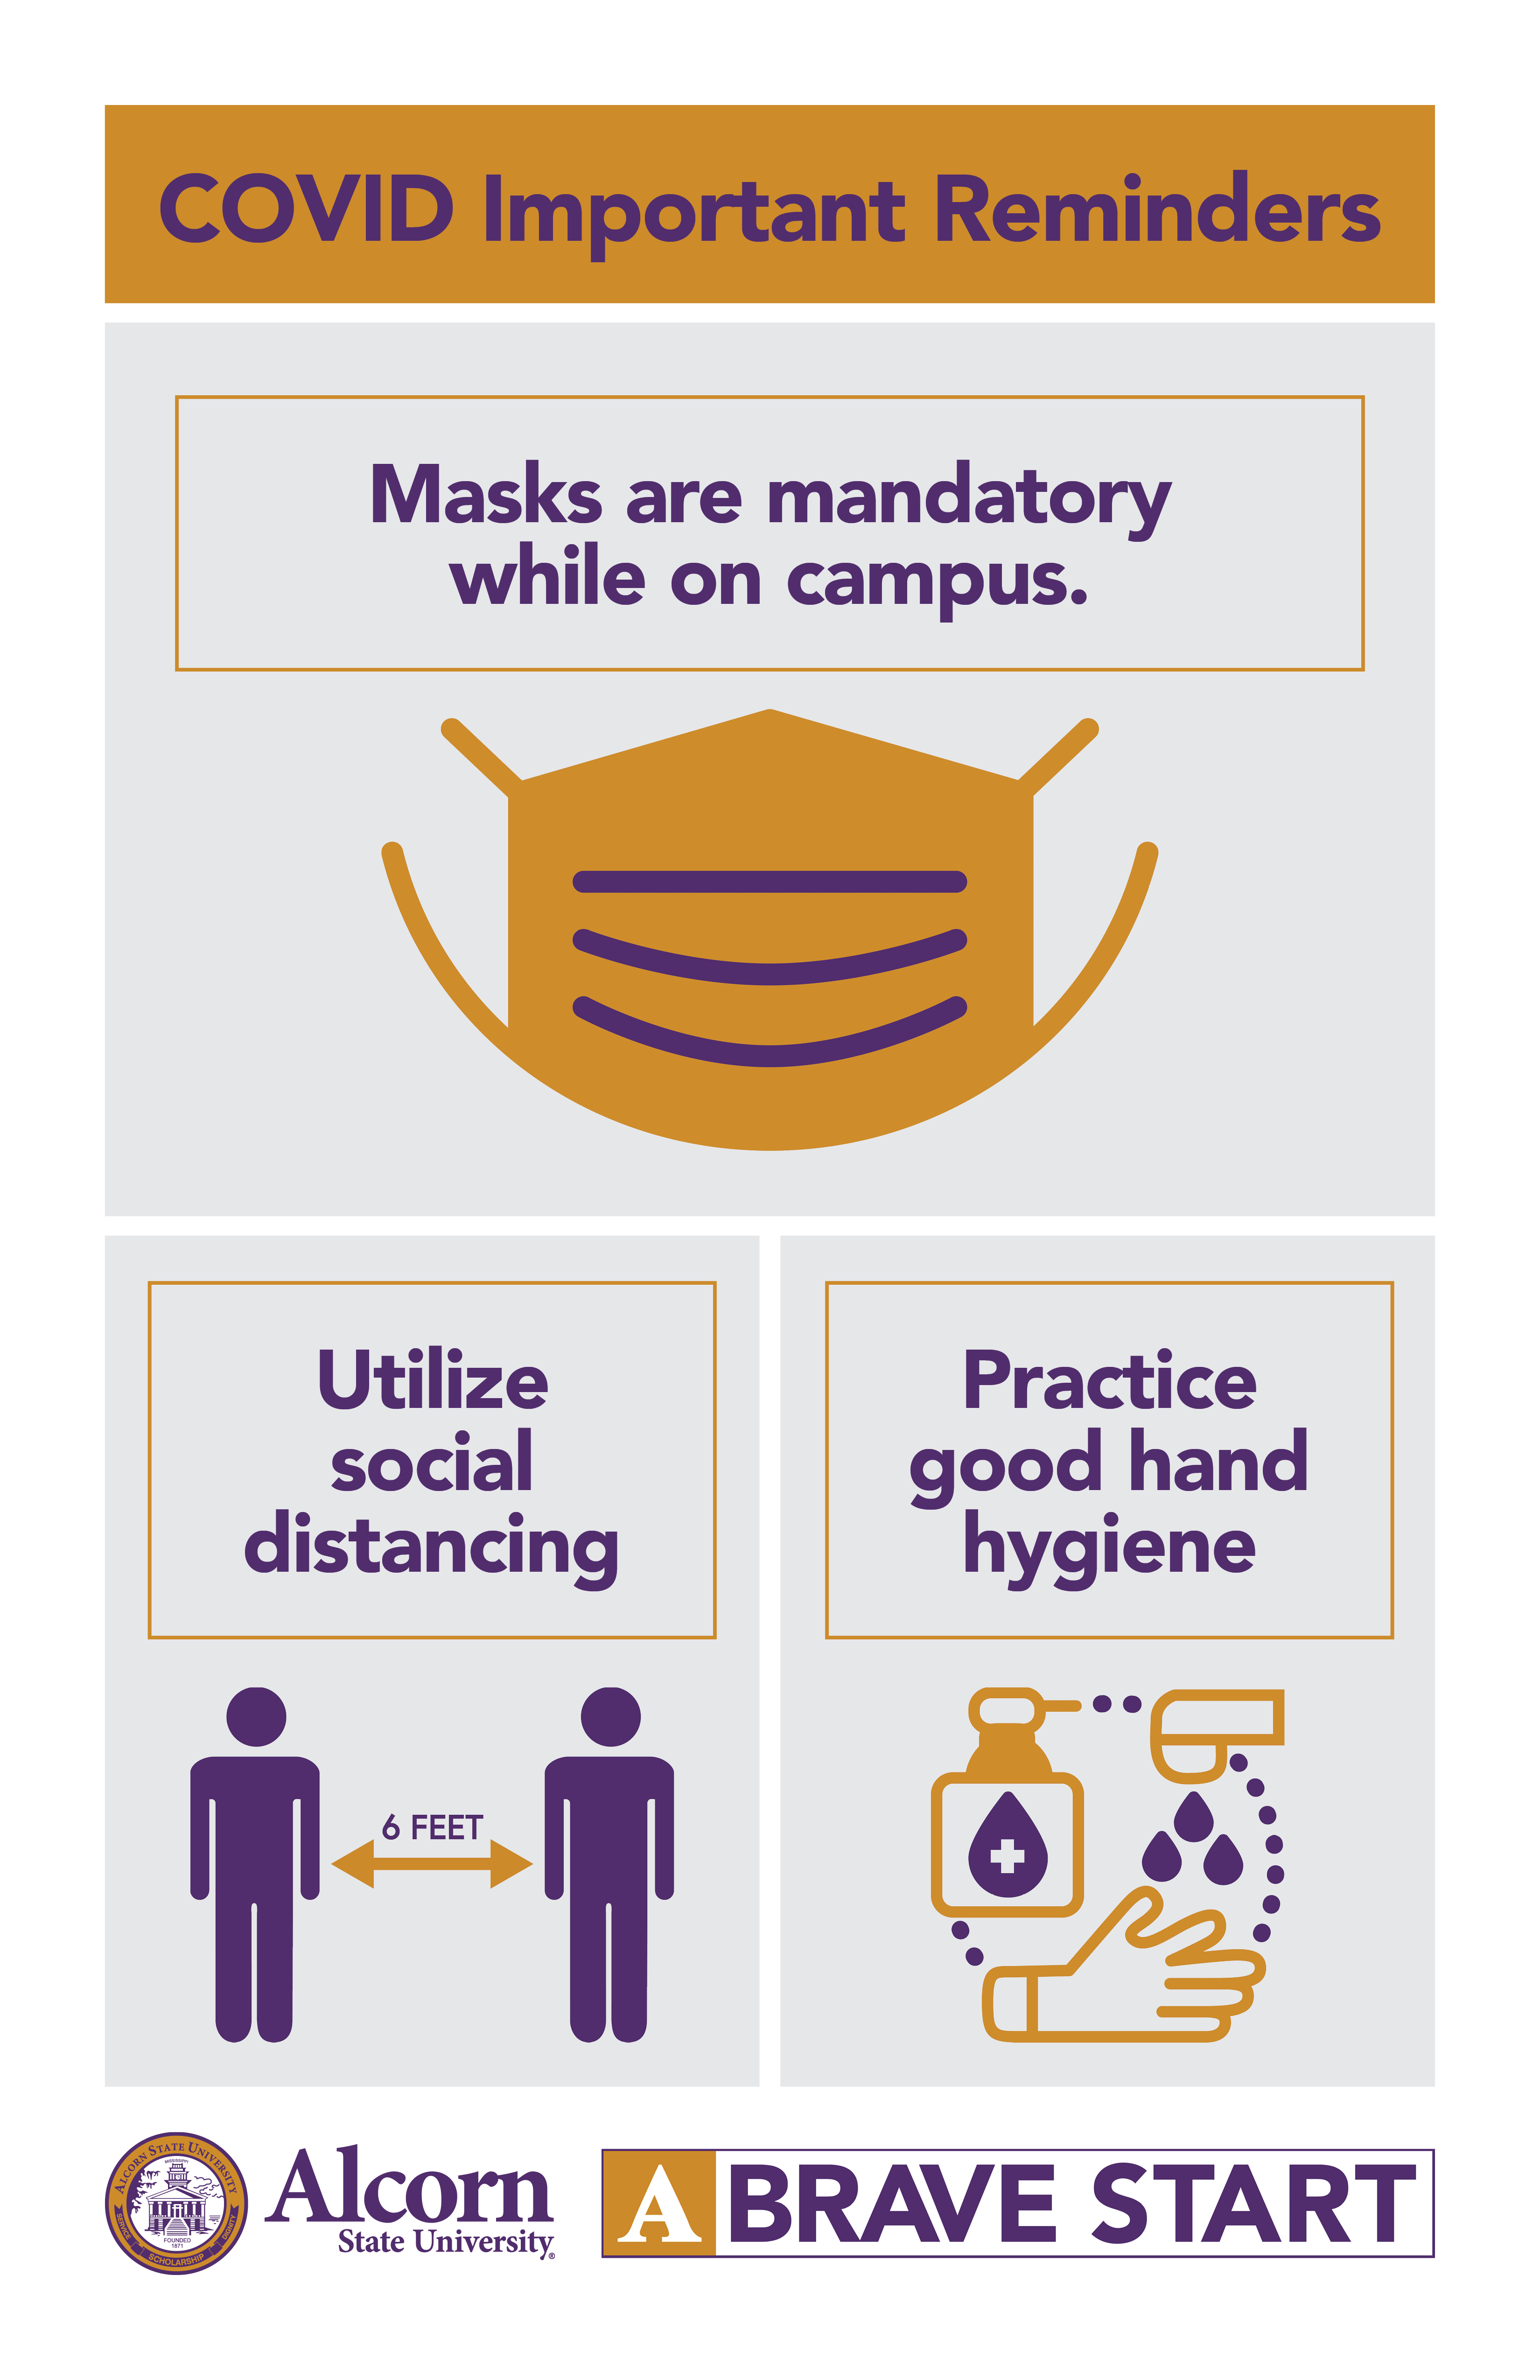 COVID Important Reminders. Masks are mandatory while on campus (Picture of a mask). Utilize social distancing (Picture of two people six feet apart). Practice good hand hygiene (picture of person washing hands). (Alcorn logo mark. A Brave Start logo mark).